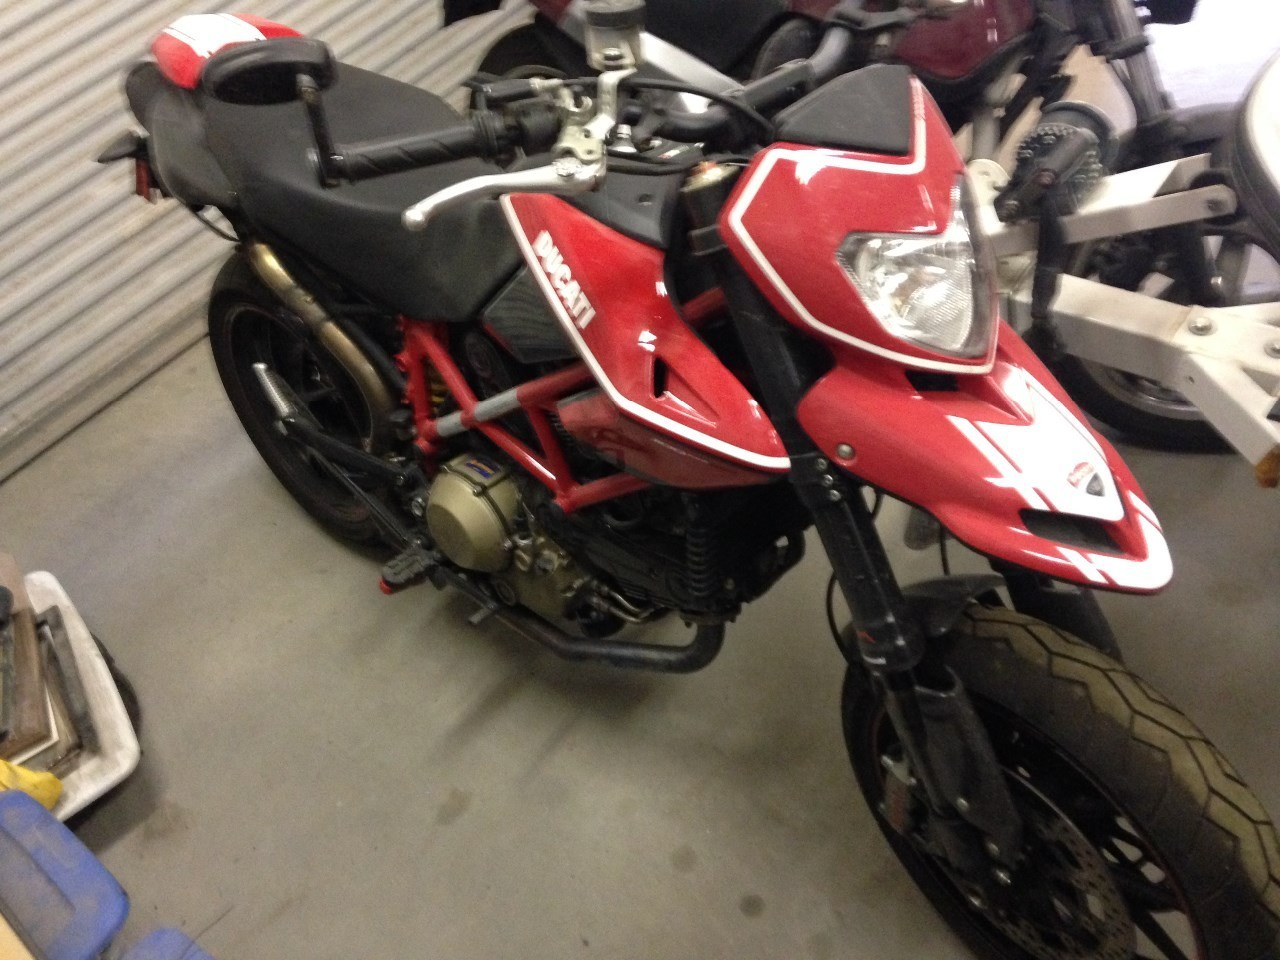 2010 Ducati Hypermotard 1100 EVO SP, motorcycle listing